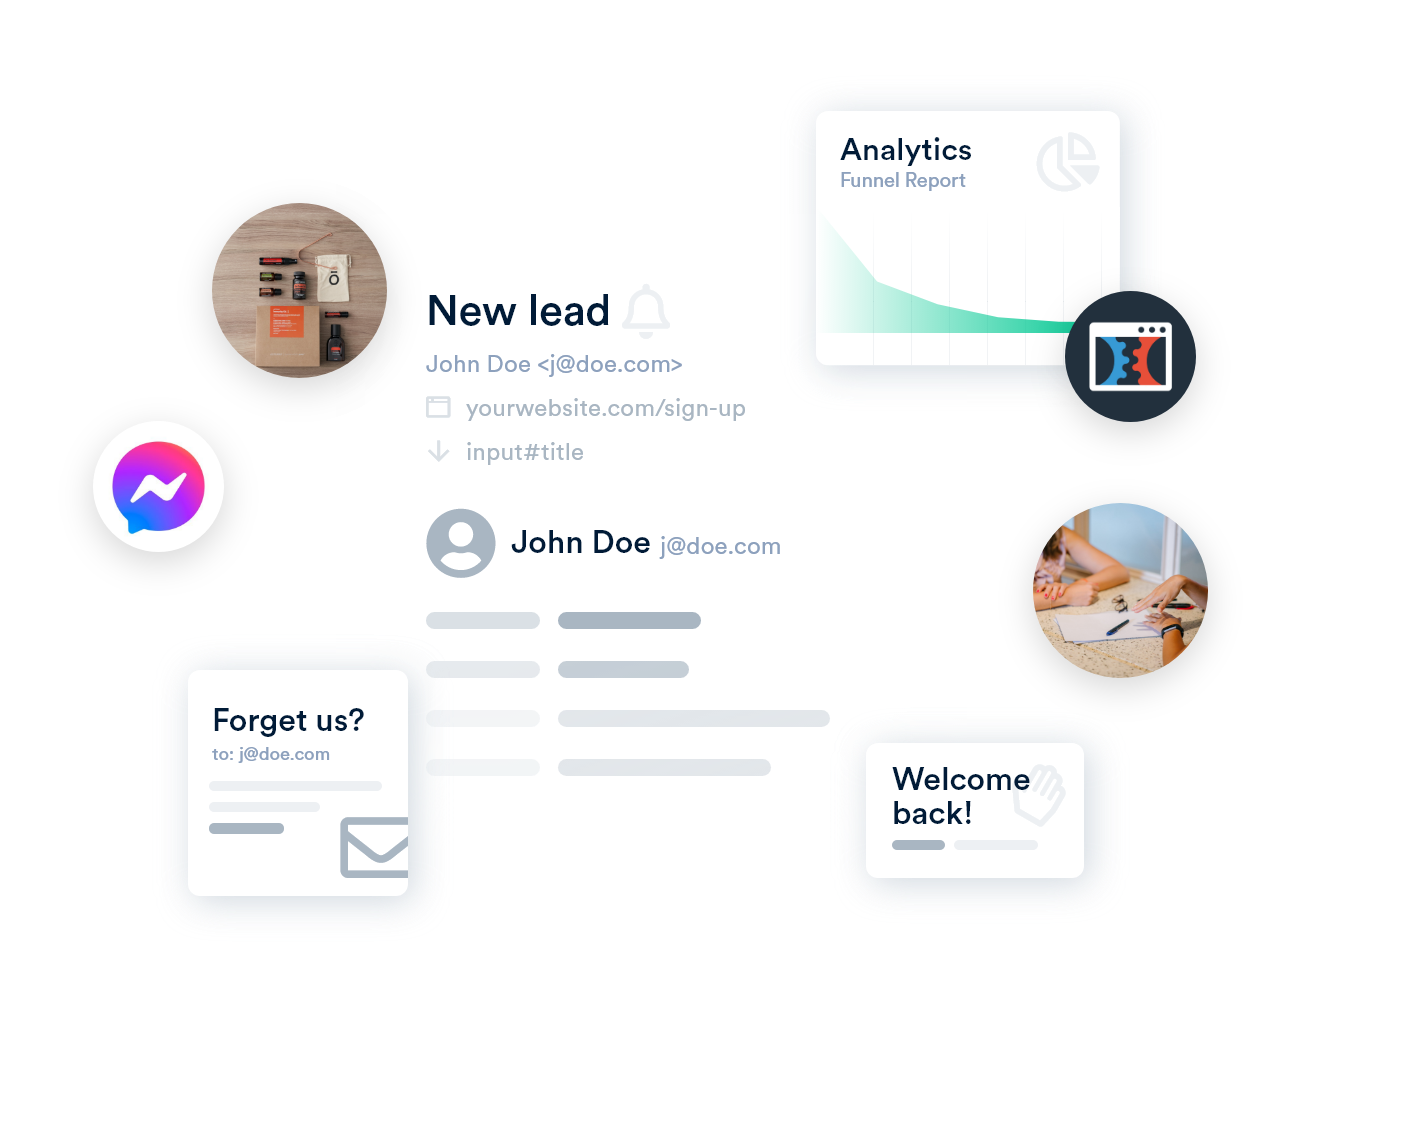 Partial Form Entry Tracking for Membership Businesses by Insiteful - All-in-One Form Abandonment & Optimization Solution | Insiteful